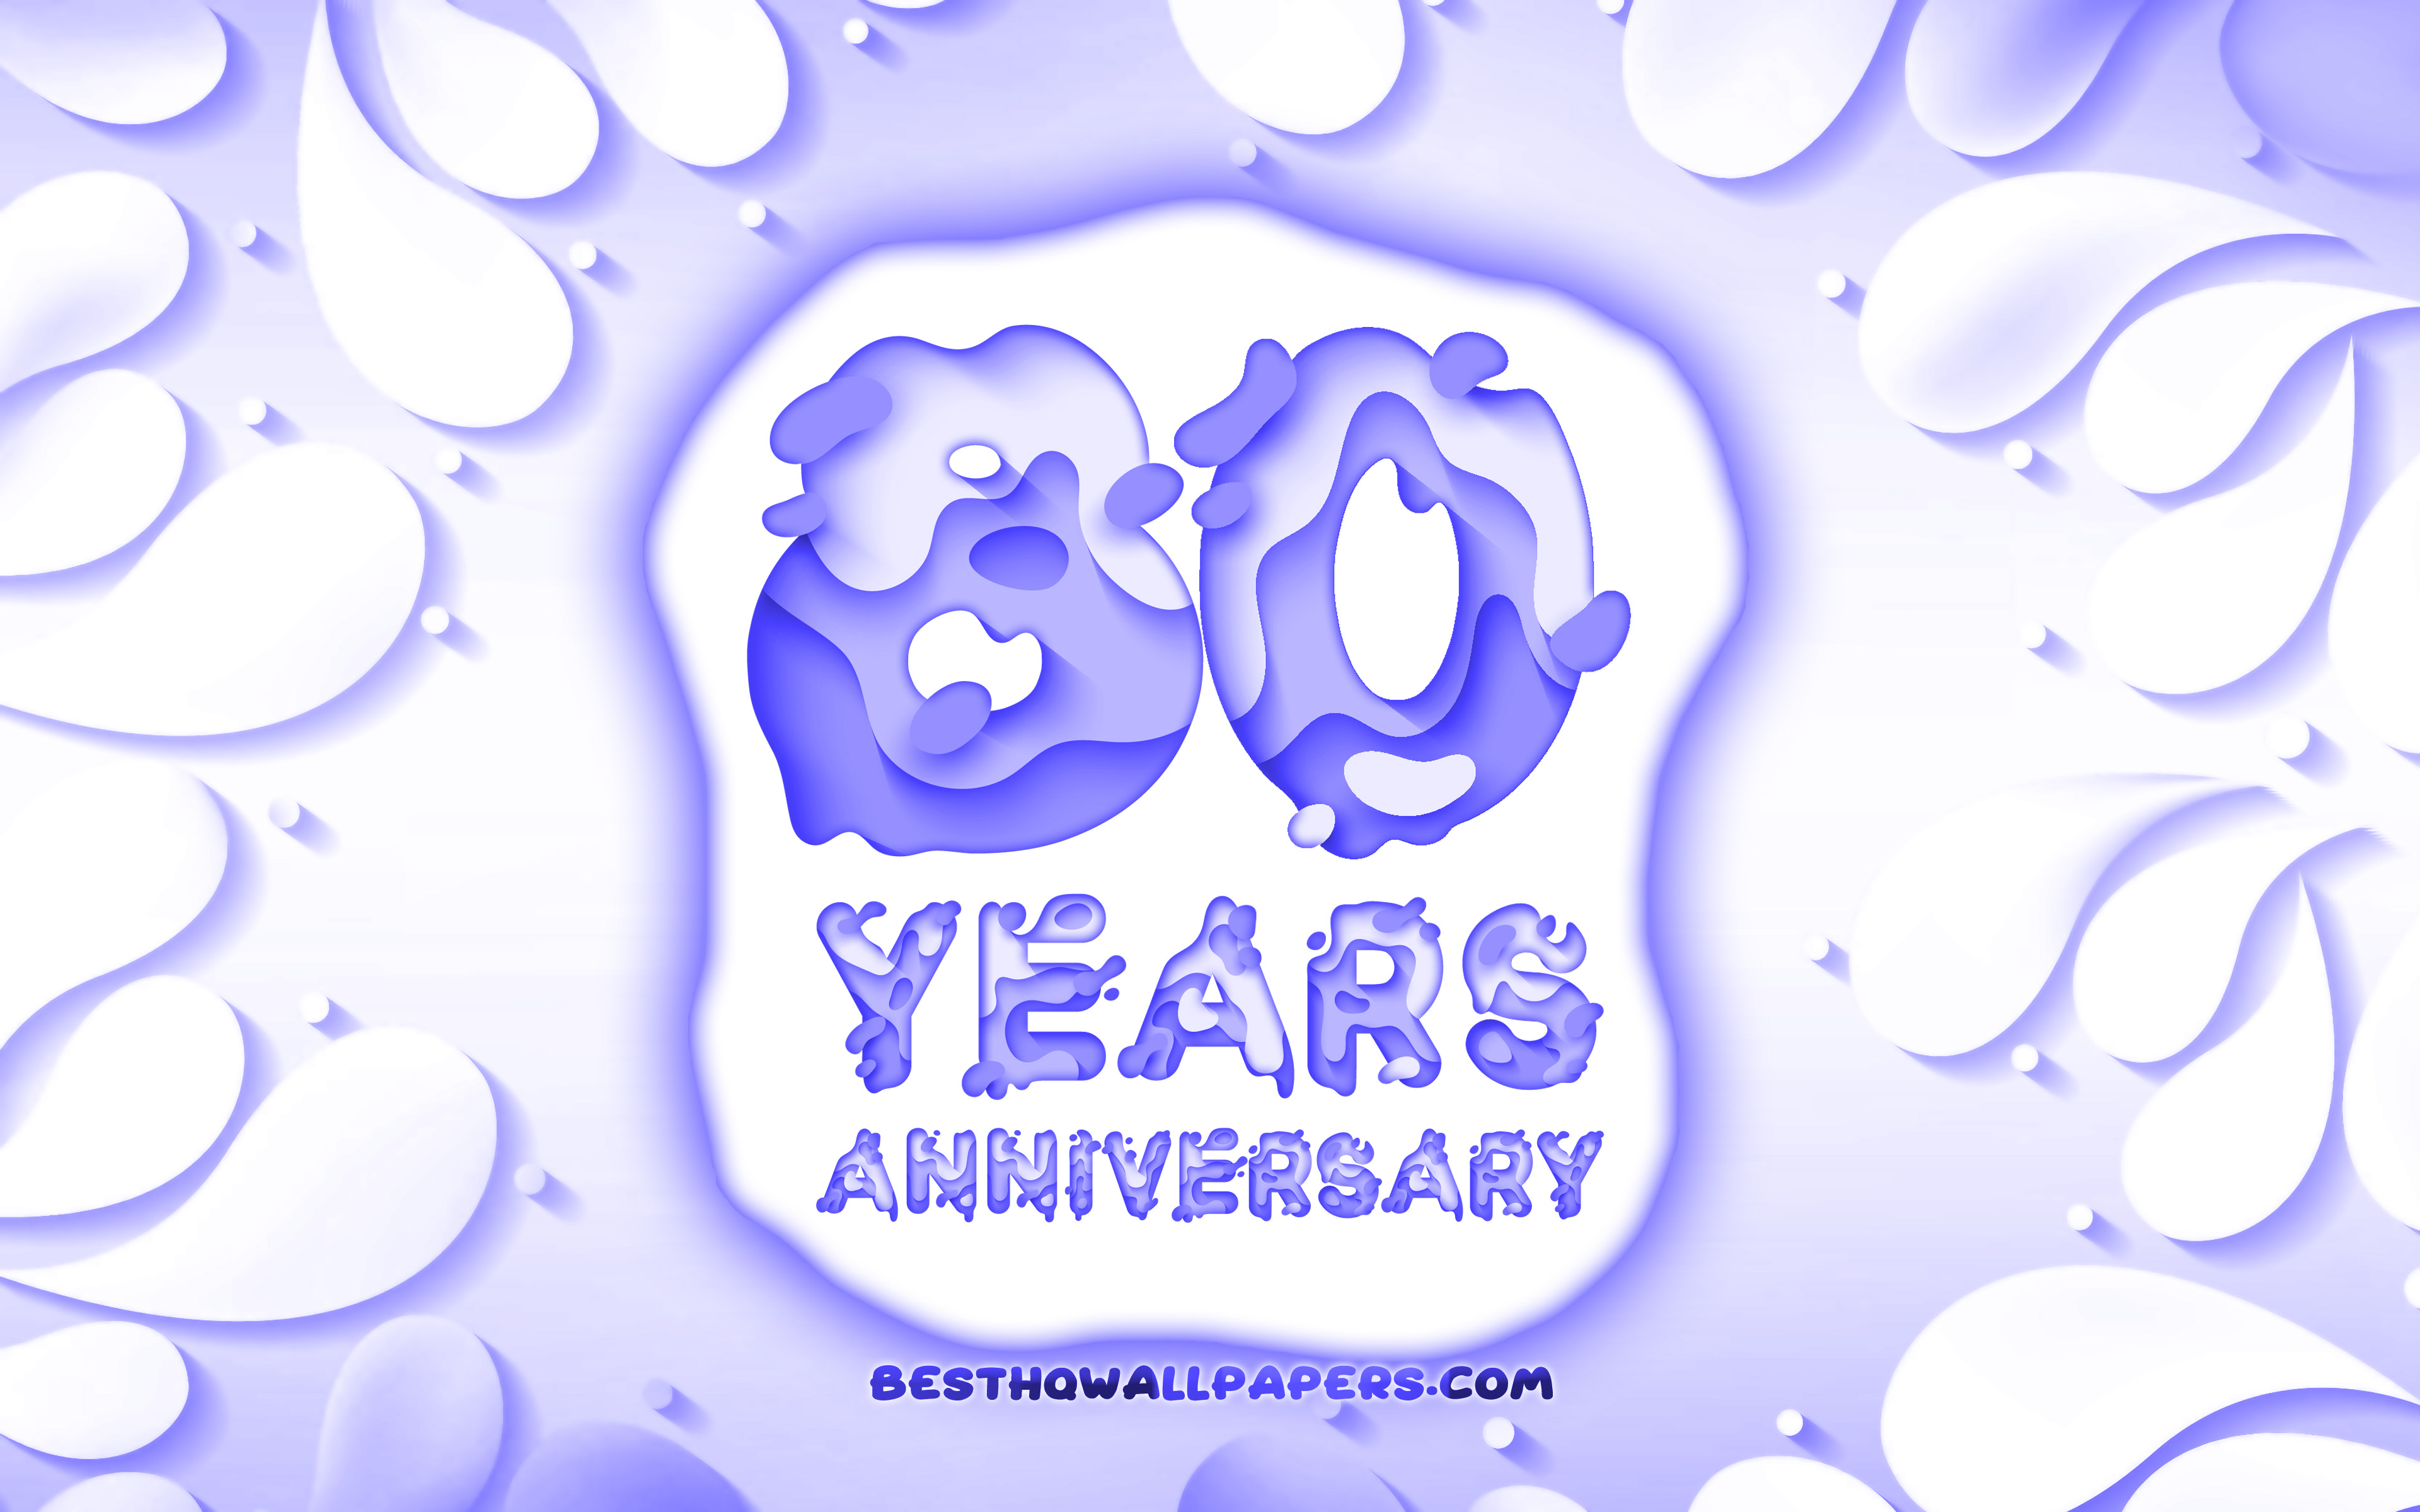 Download wallpapers 80th anniversary, 4k, 3D petals frame.